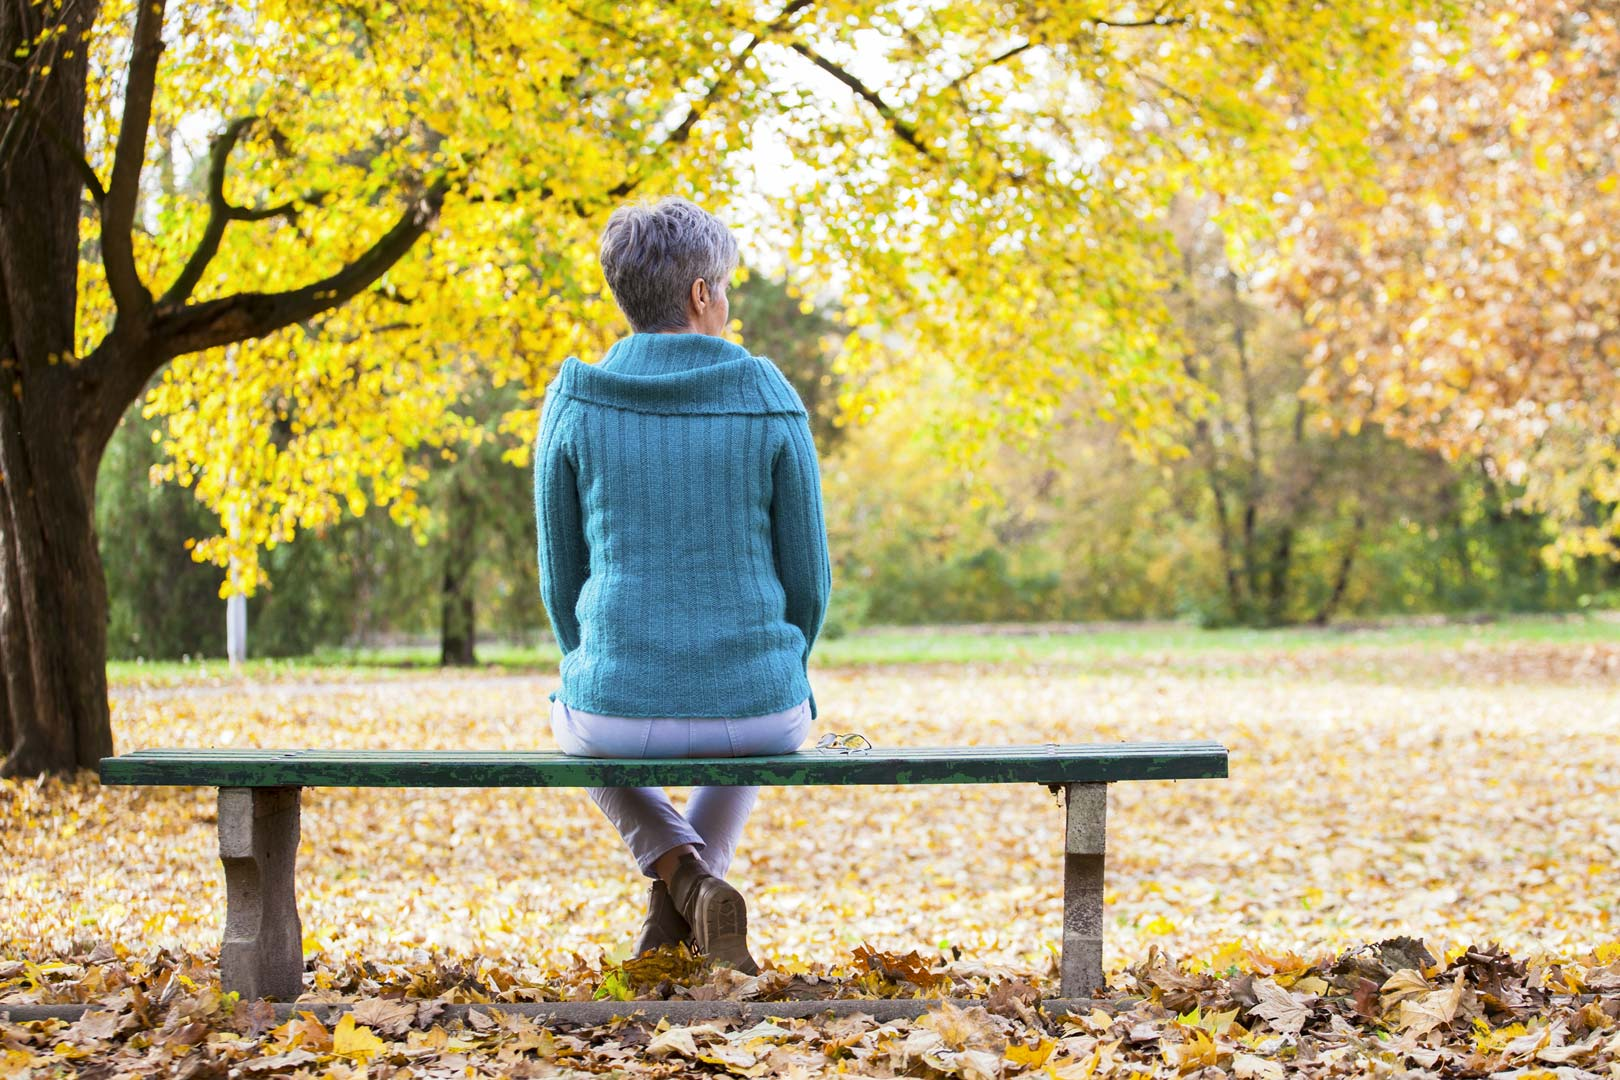 Person on bench in front of autumn trees